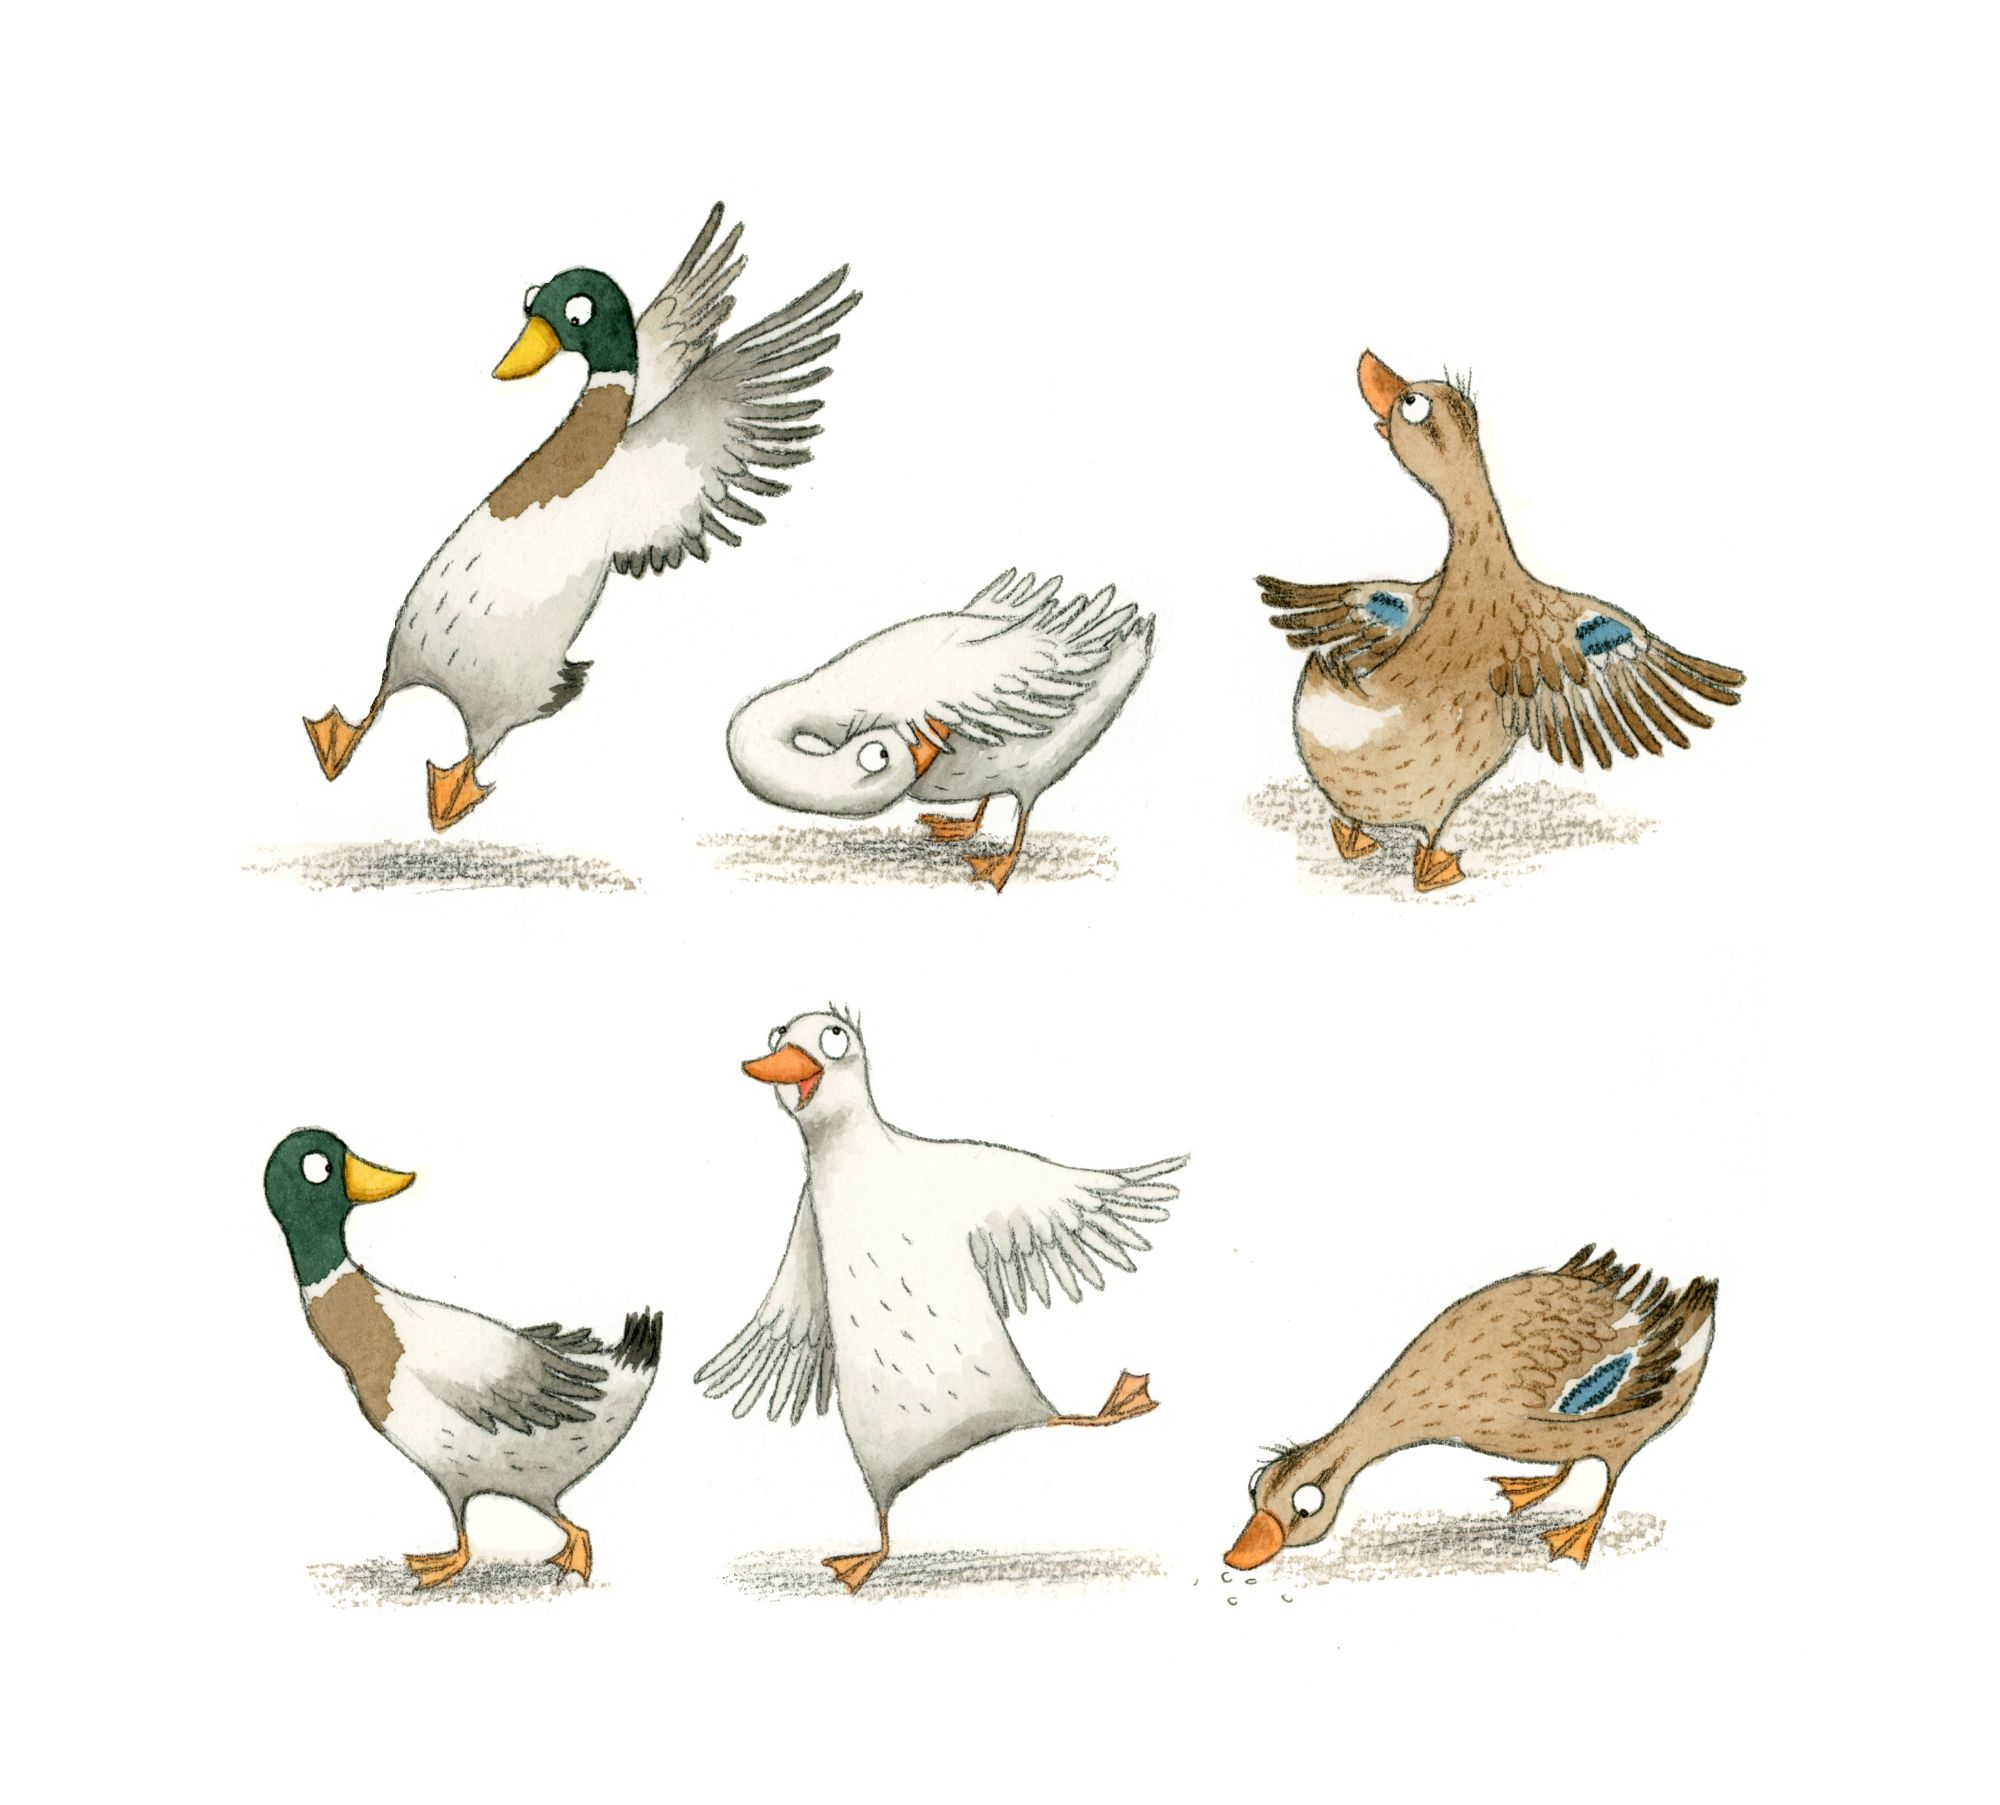 Duck illustrations